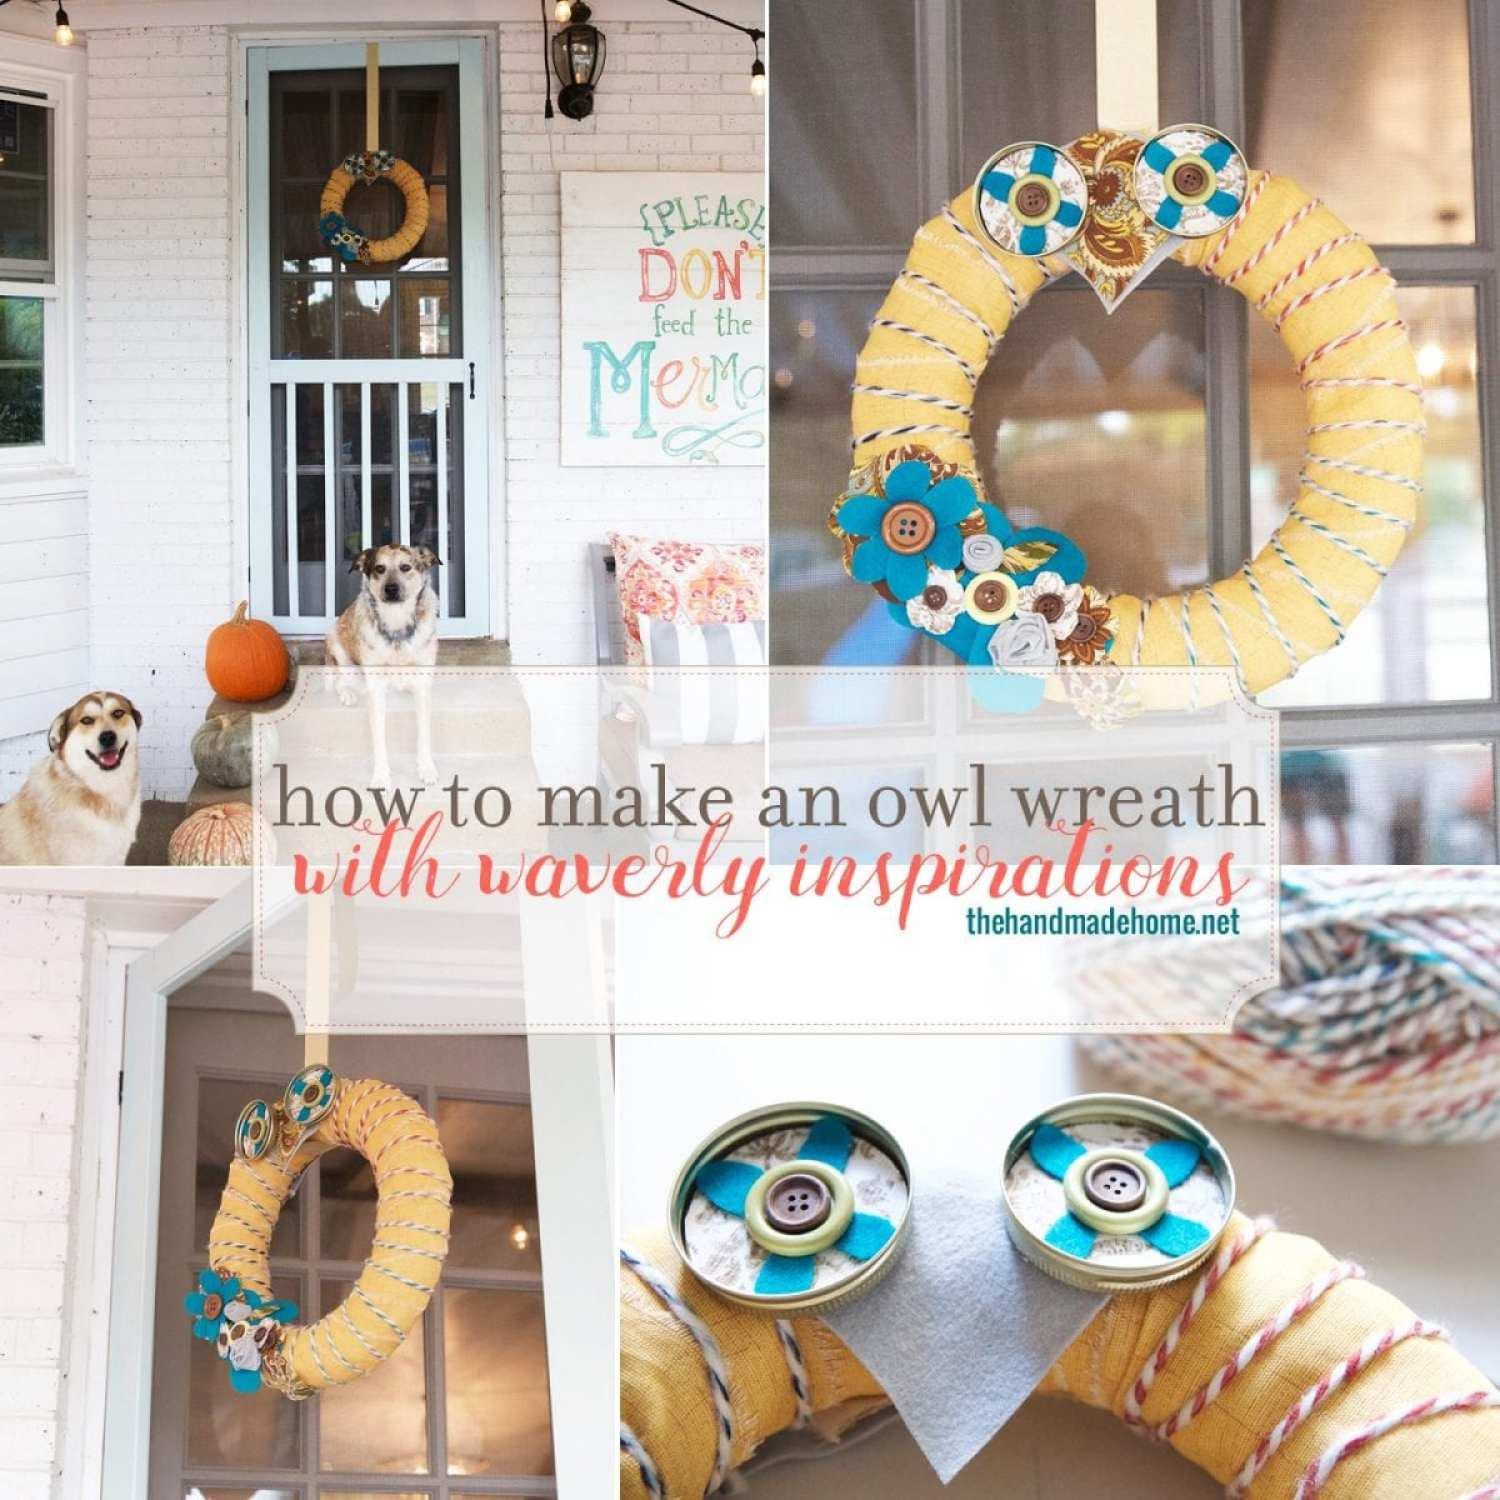 howtomakeanowlwreath